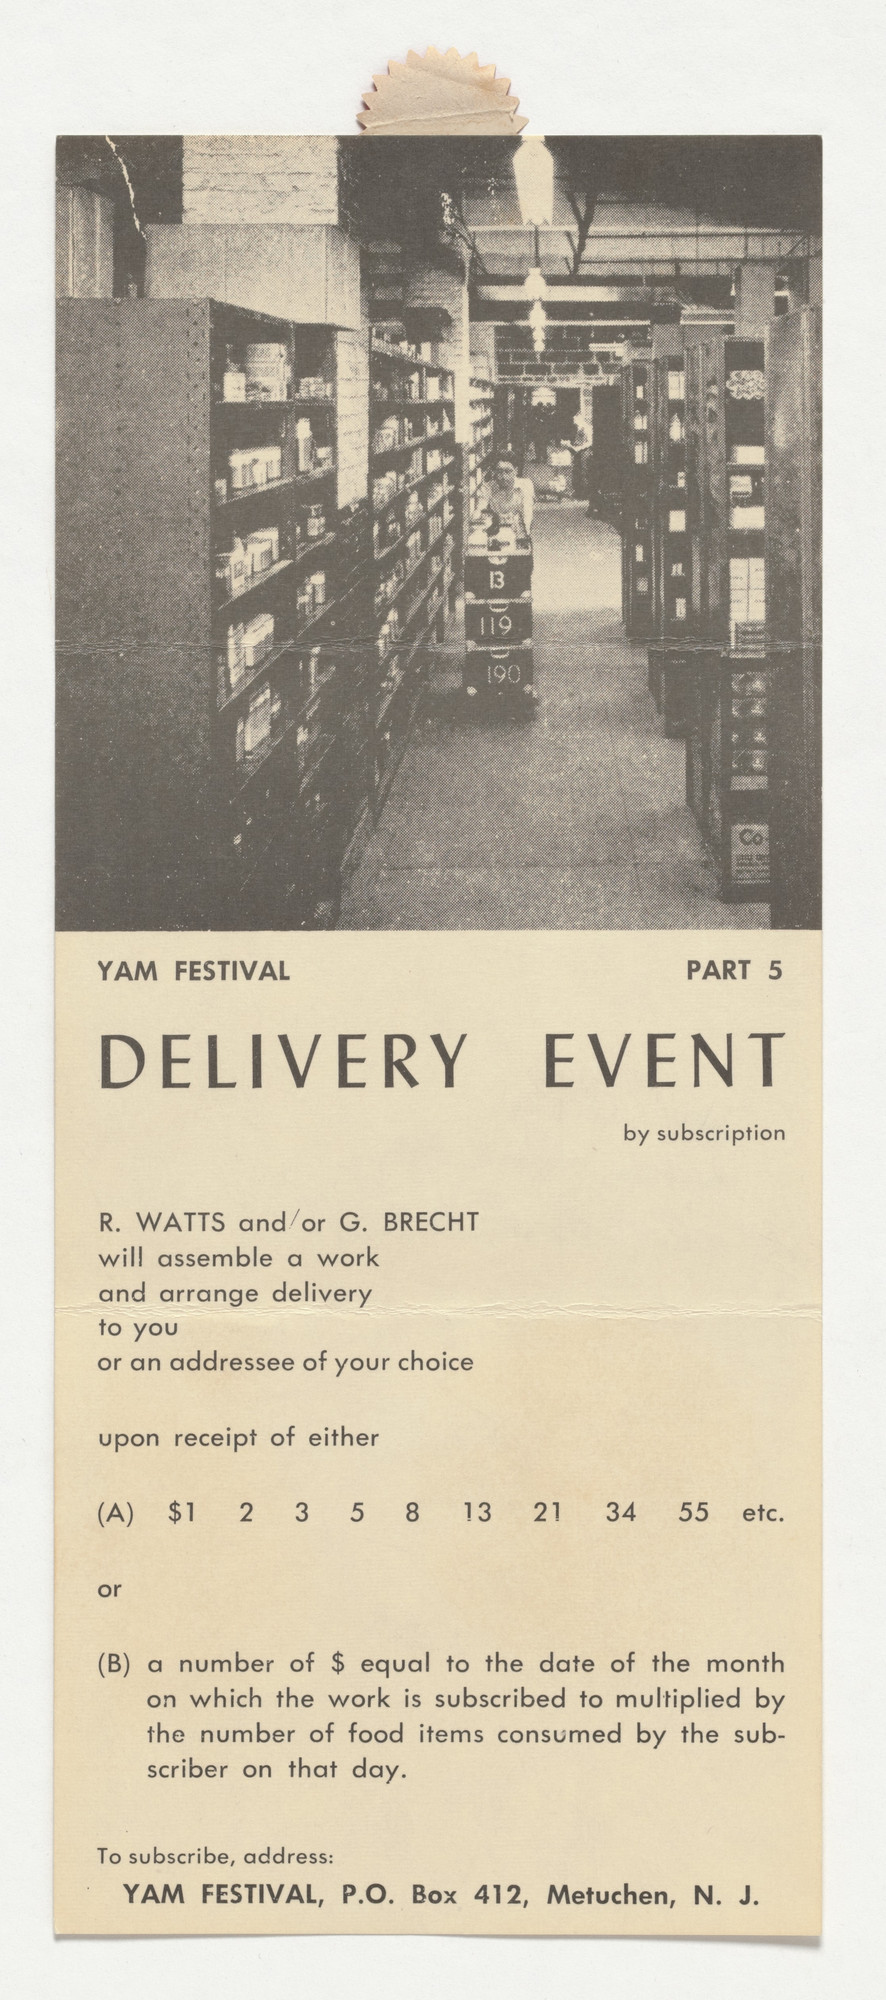 George Brecht, Robert Watts. Announcement card for Delivery Event (Yam Festival Part 5). 1962